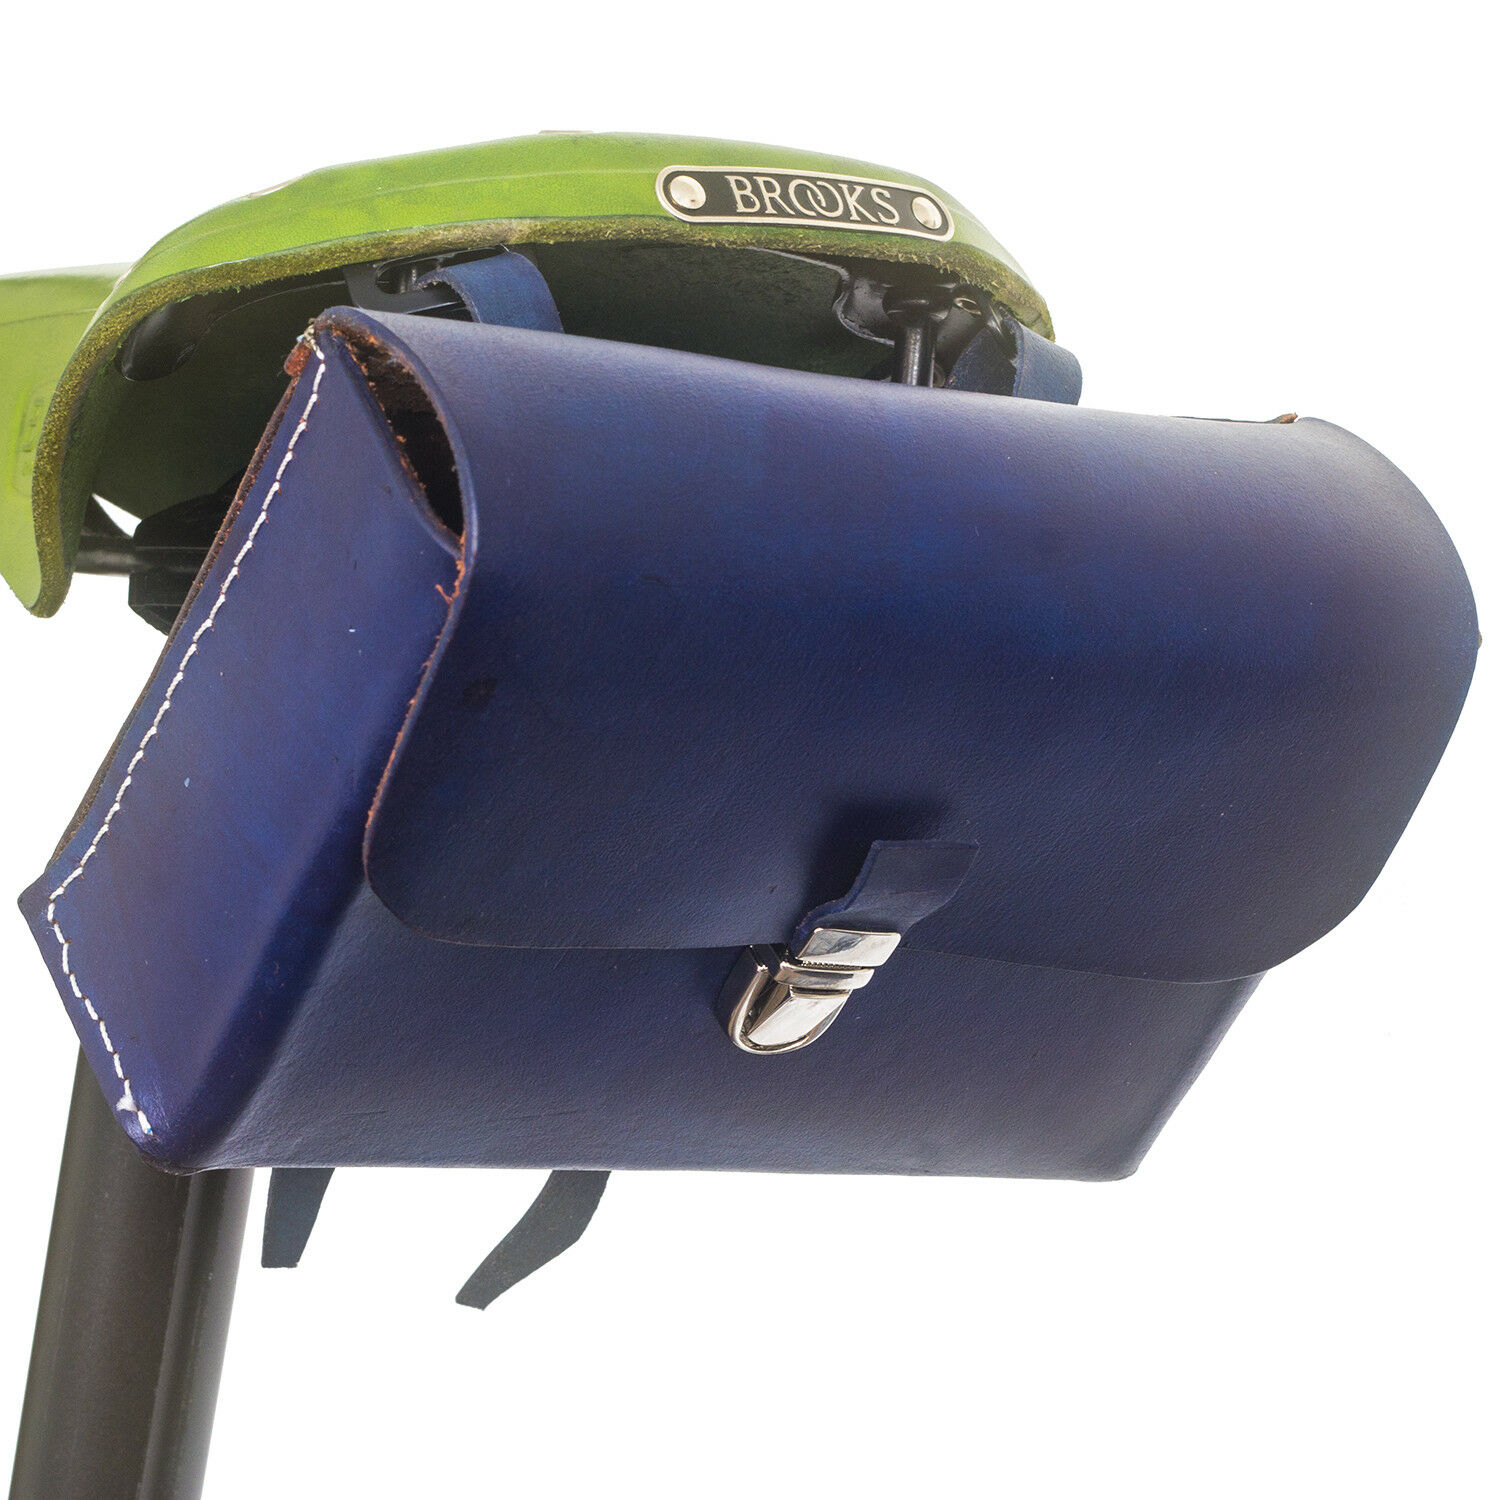 Leather Saddle Bag For  Bike NAVY blueeE Limited Edition by London Craftwork L03  discount store